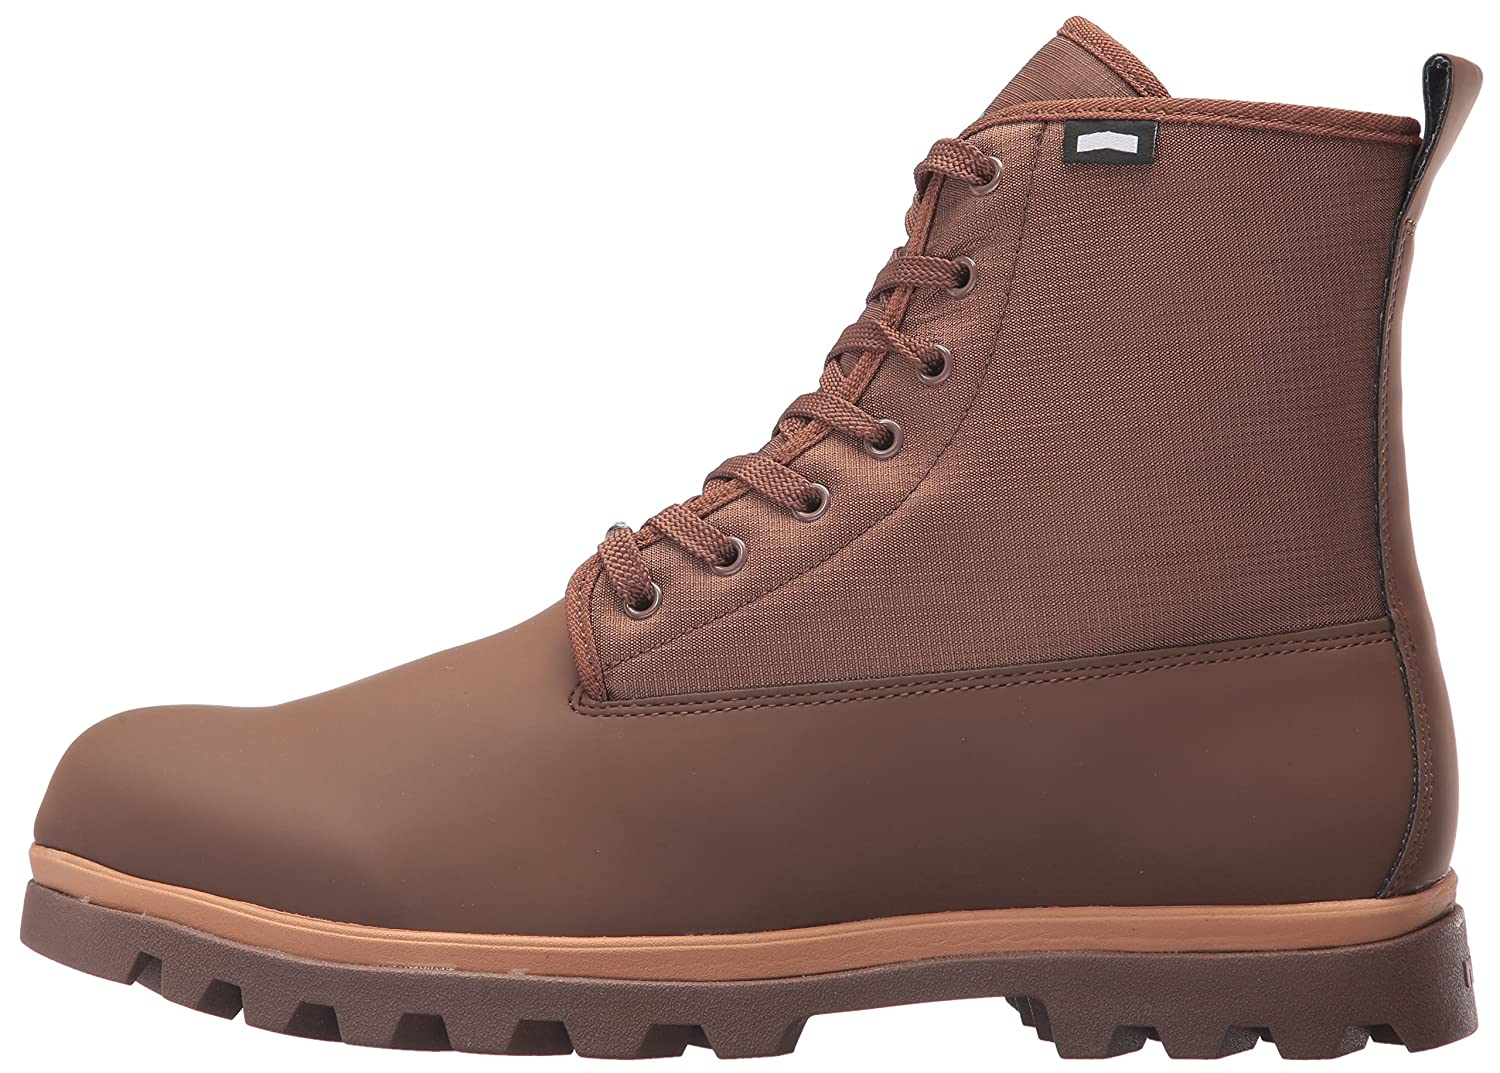 Native Herren Brown/Howler Boots Johnny TrekLite Howler Brown/Howler Herren Brown 9b82c2